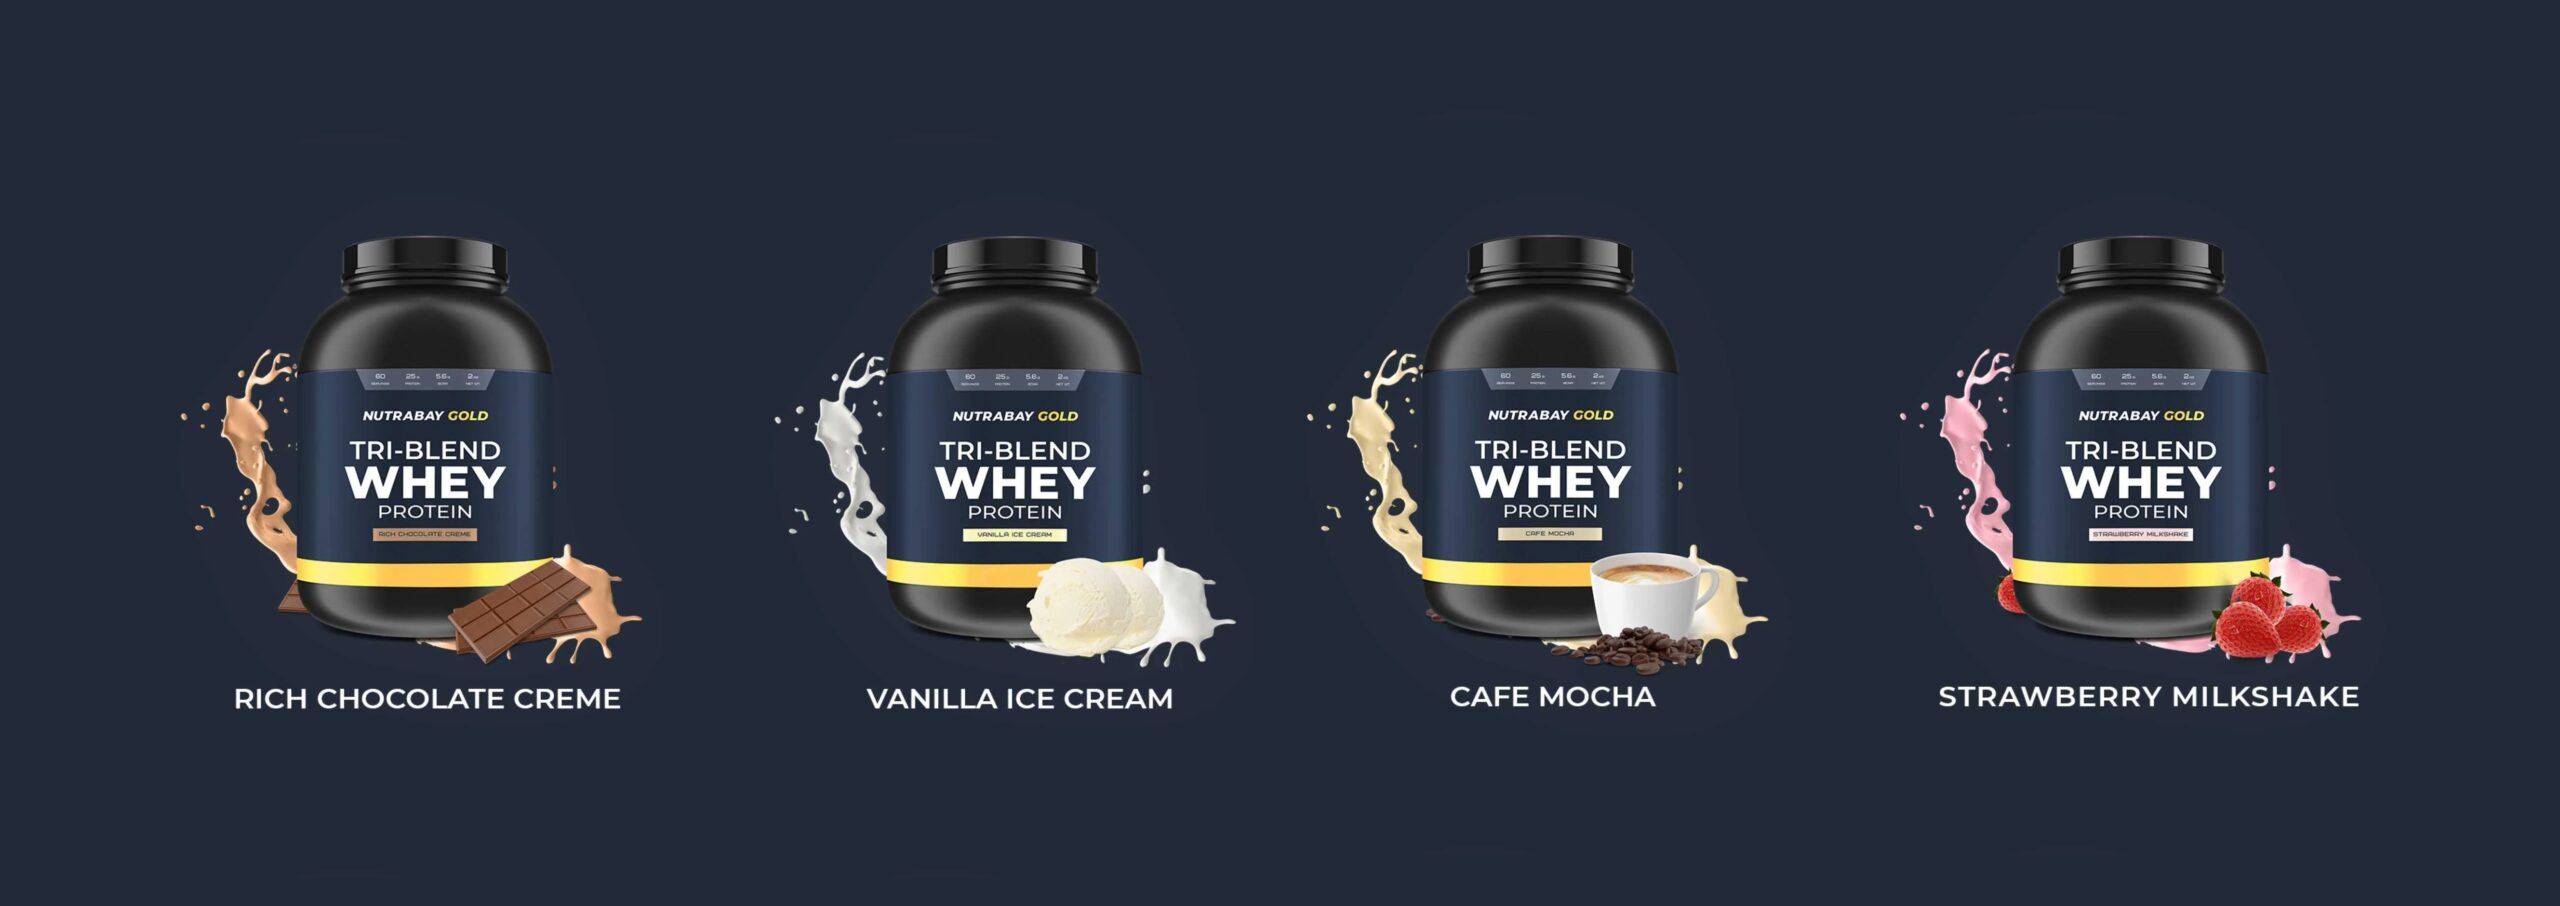 Top-5 Whey Protein Concentrate Supplements In India scaled